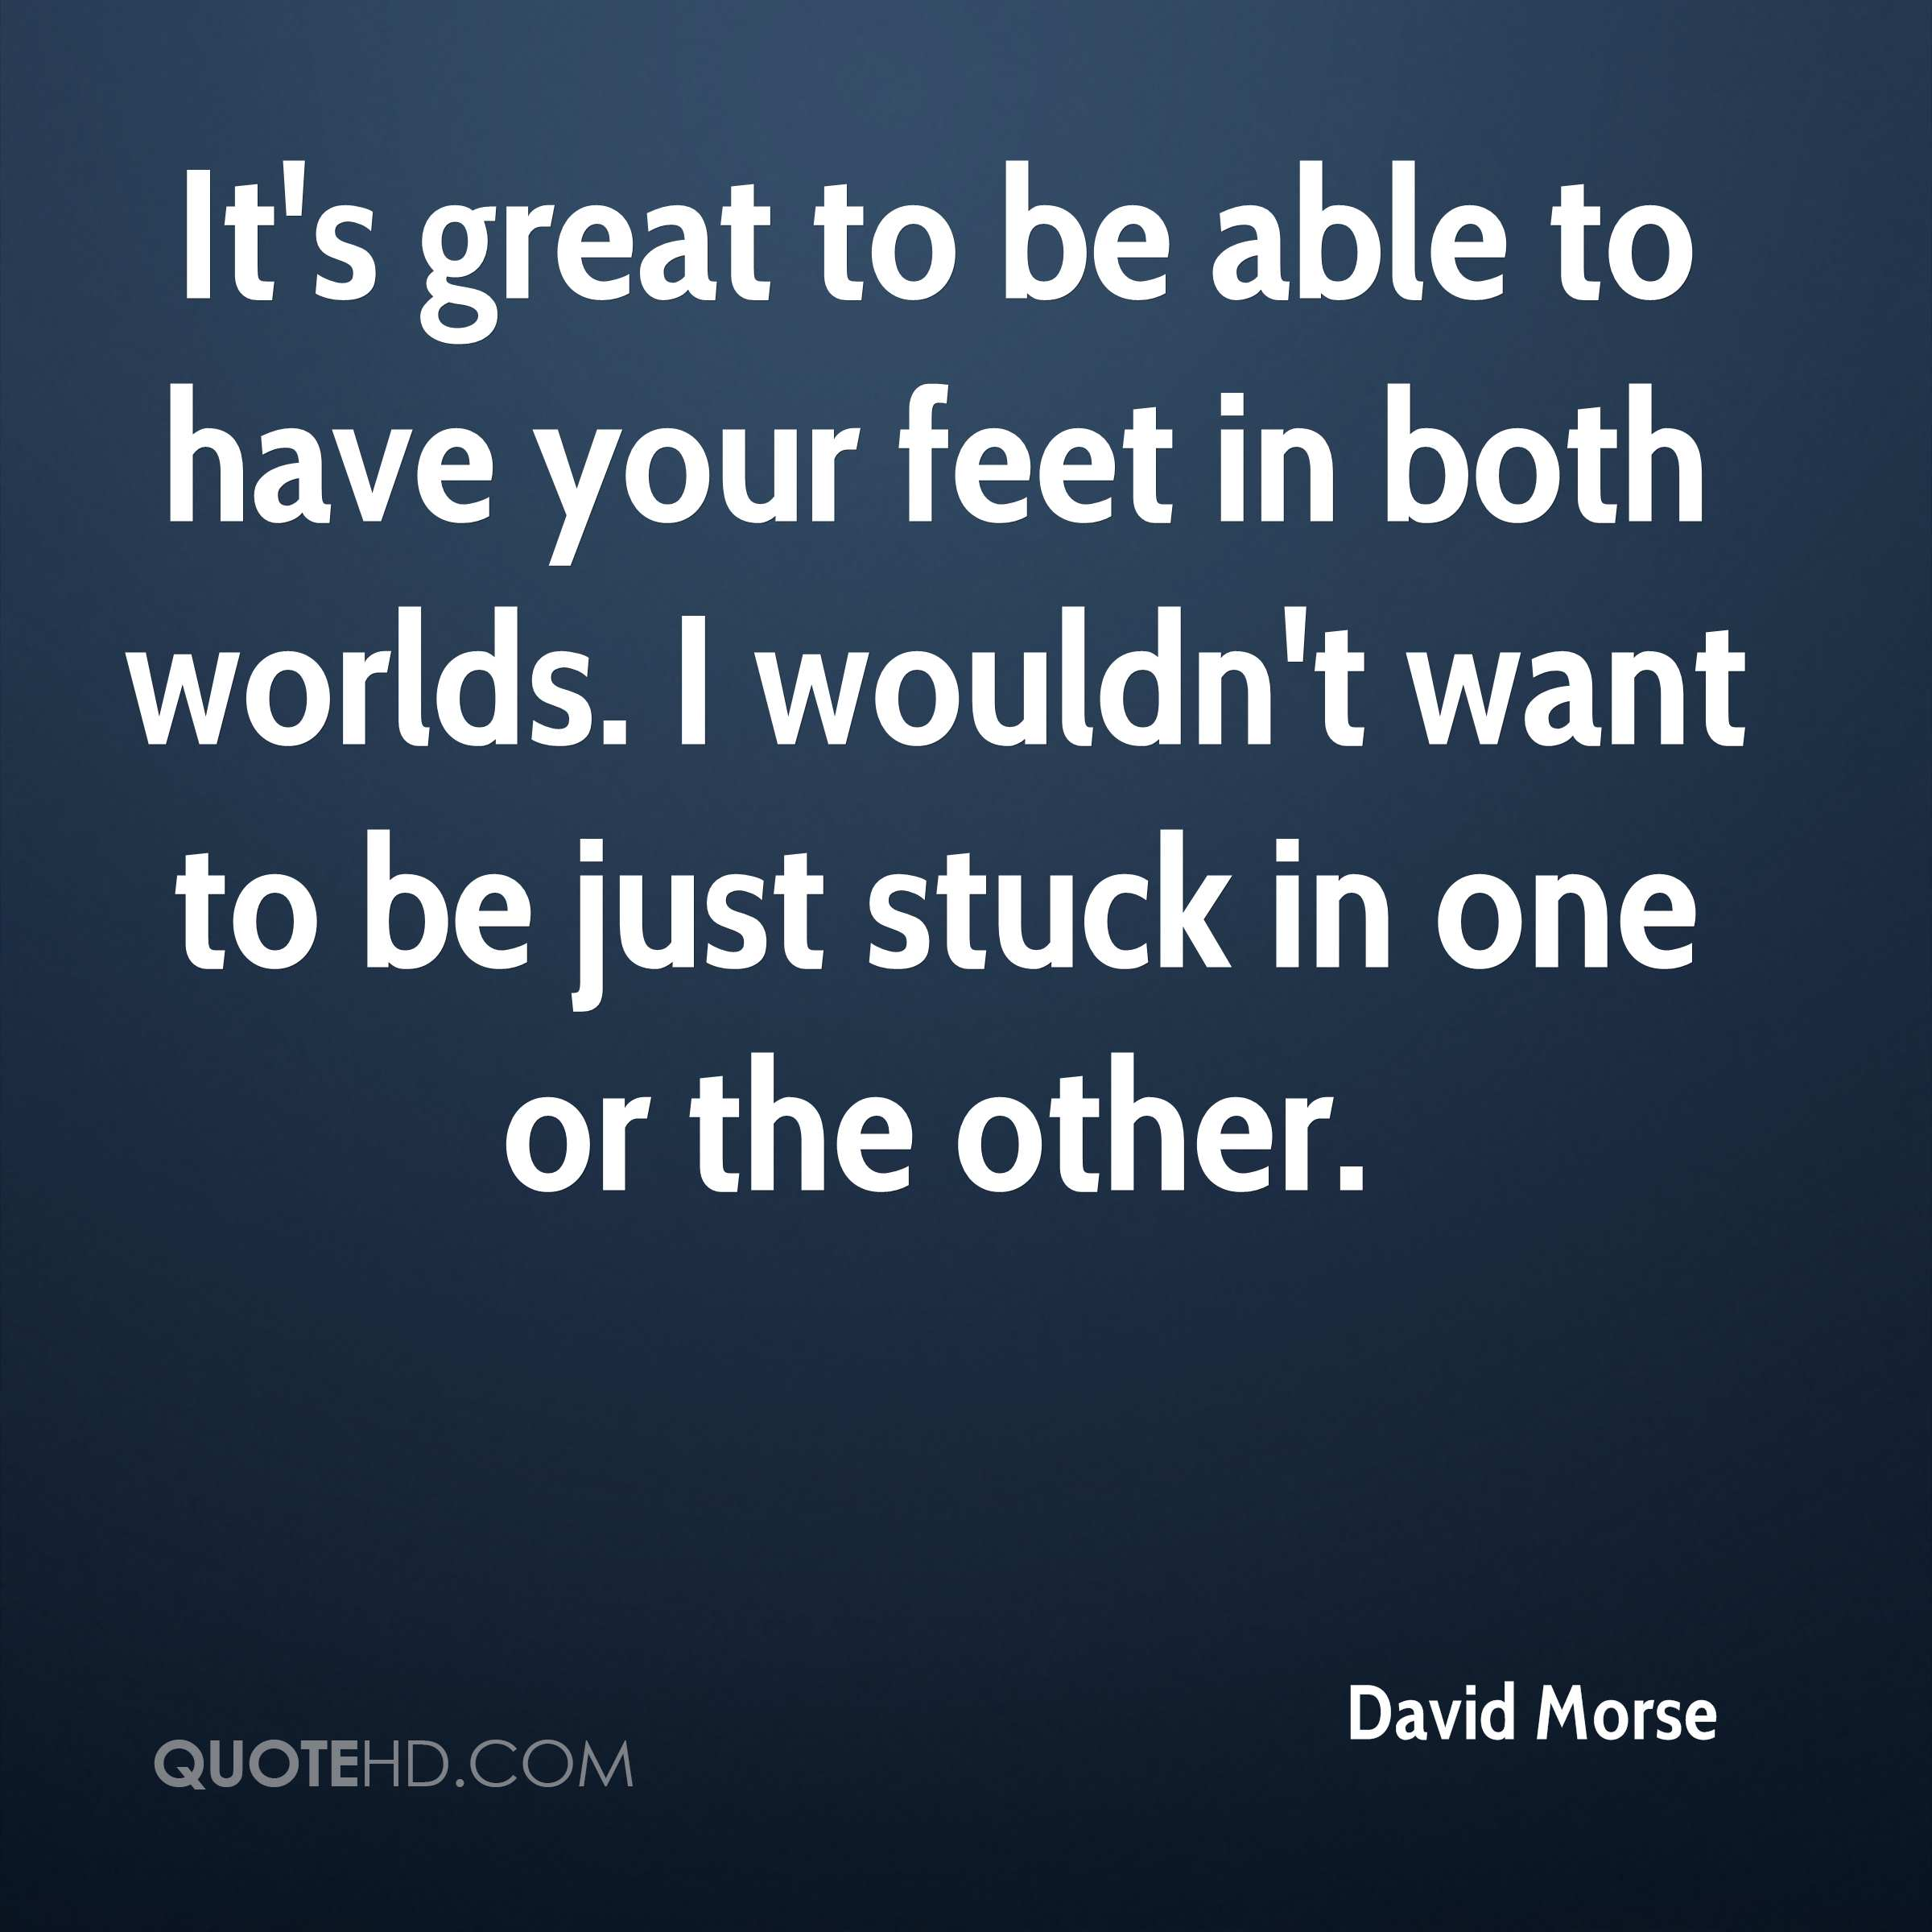 It's great to be able to have your feet in both worlds. I wouldn't want to be just stuck in one or the other.